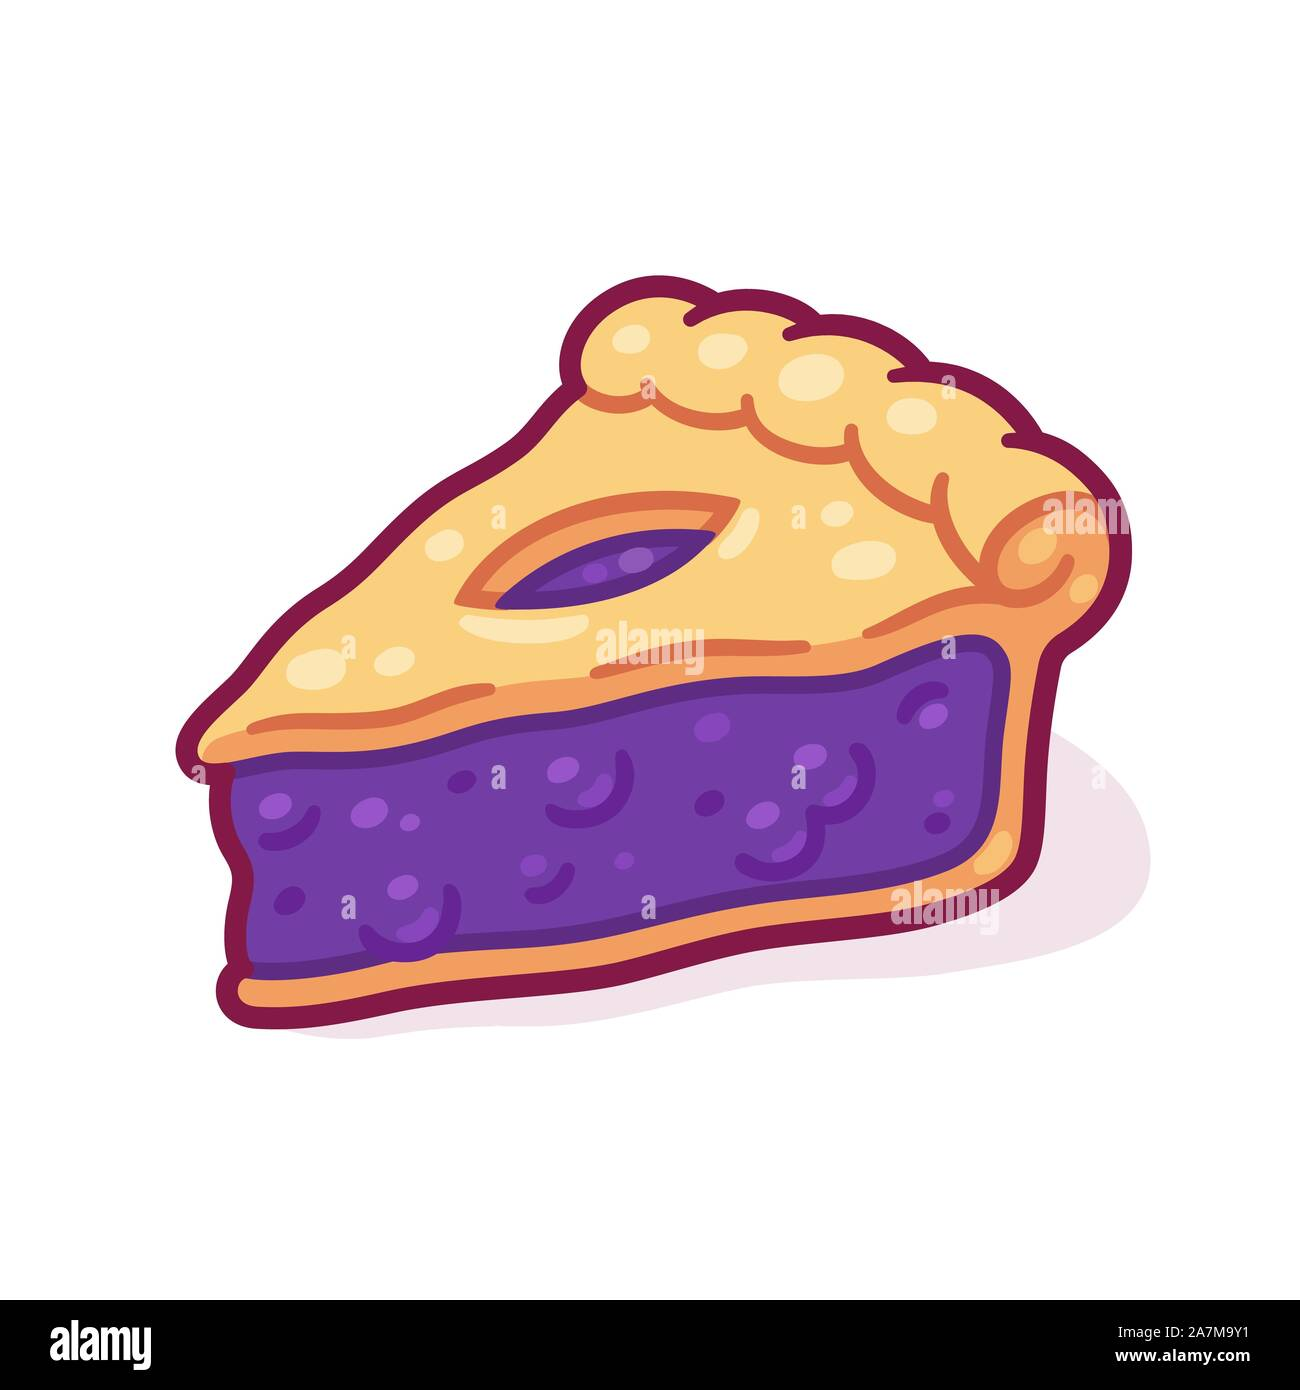 Cute Cartoon Blueberry Pie Drawing Hand Drawn Slice Of Traditional Berry Pie Isolated Vector Illustration Stock Vector Image Art Alamy